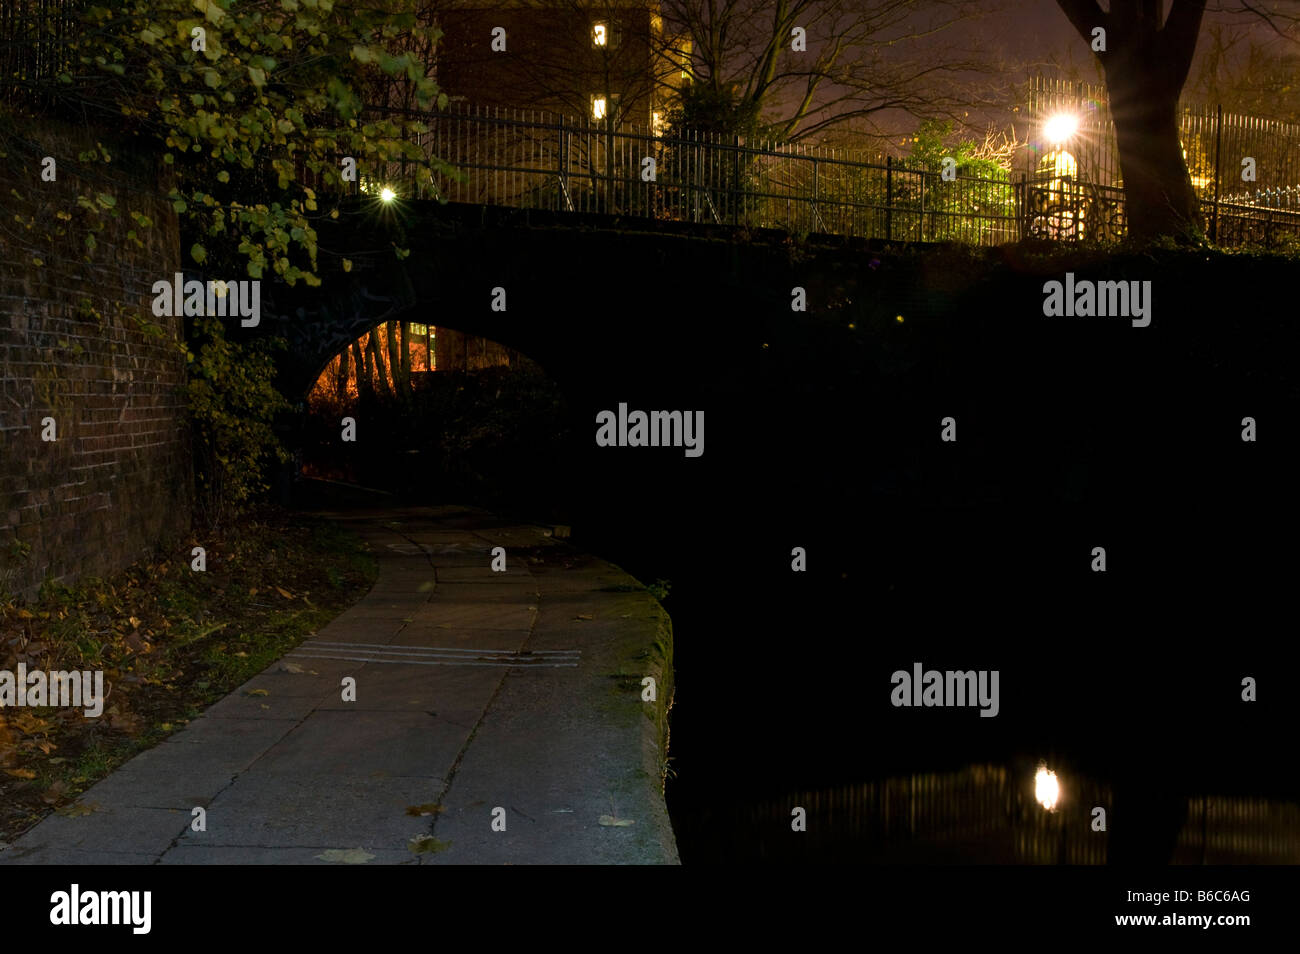 view under a bridge on regent's canal at night - Stock Image